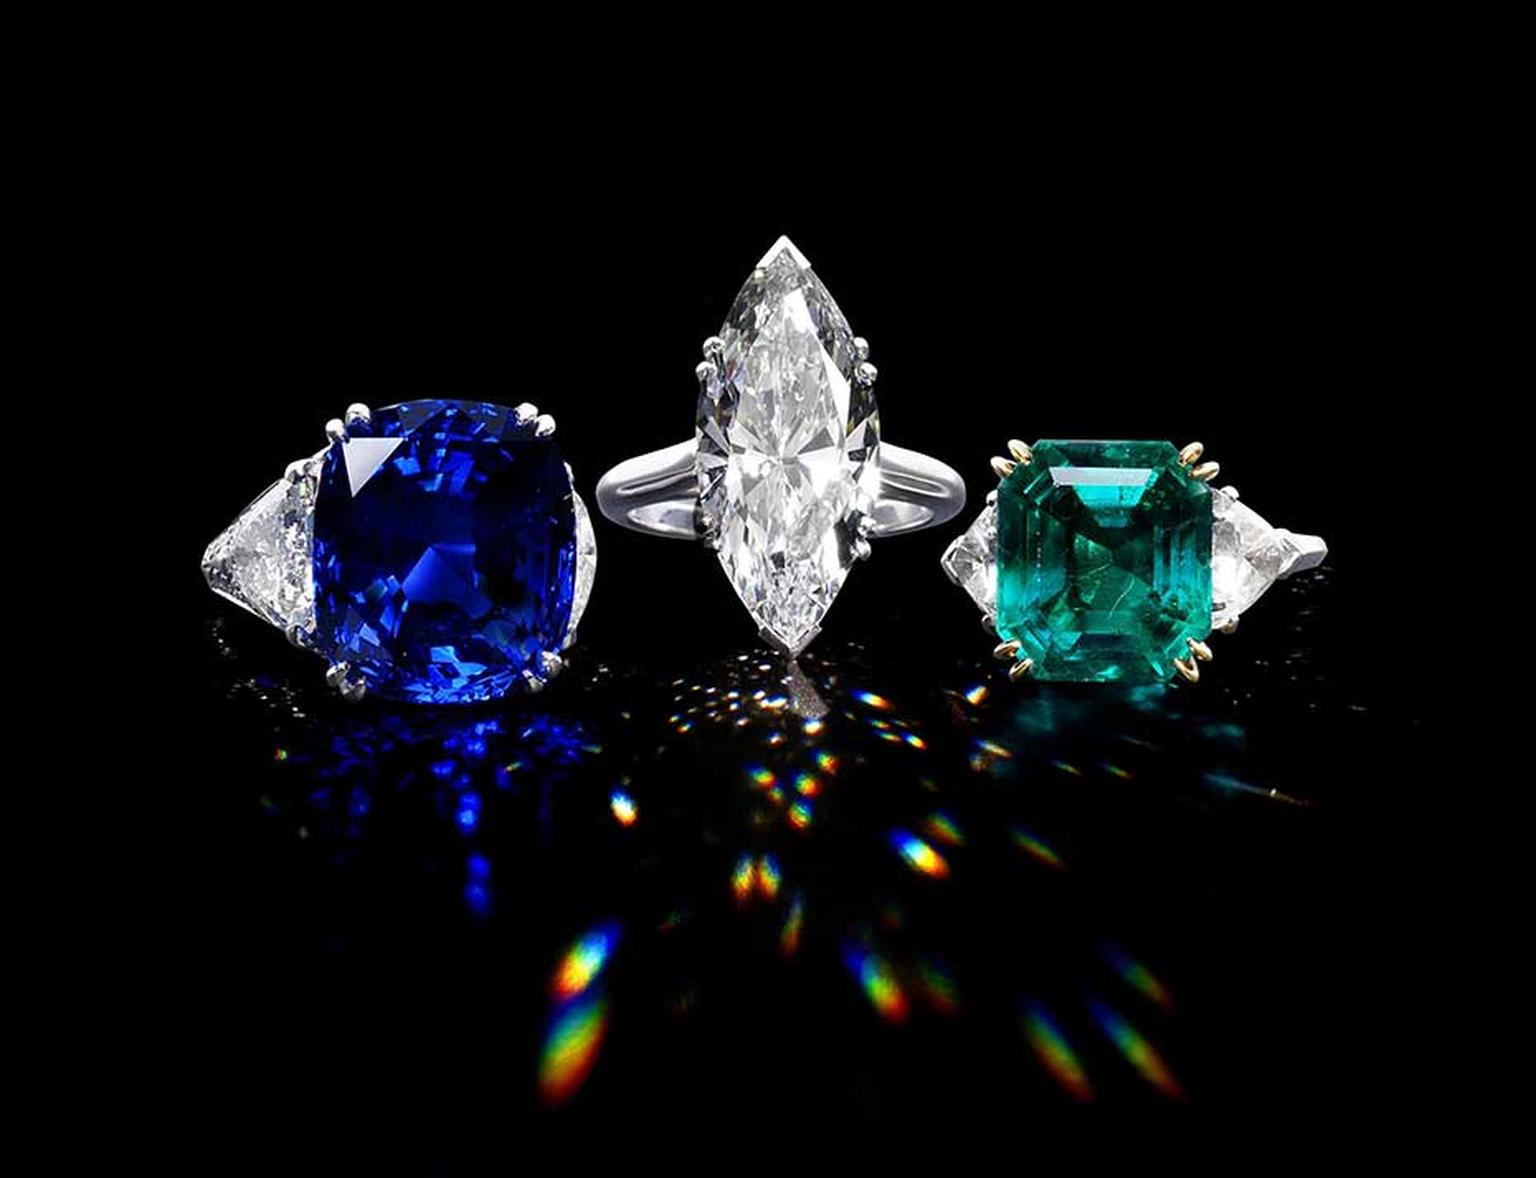 A trio of rings, including a marquise-cut diamond ring by Piaget, centre, with a combined high estimate of £750,000 are the stars of Bonhams' Fine Jewellery Sale in London on 30 April 2014